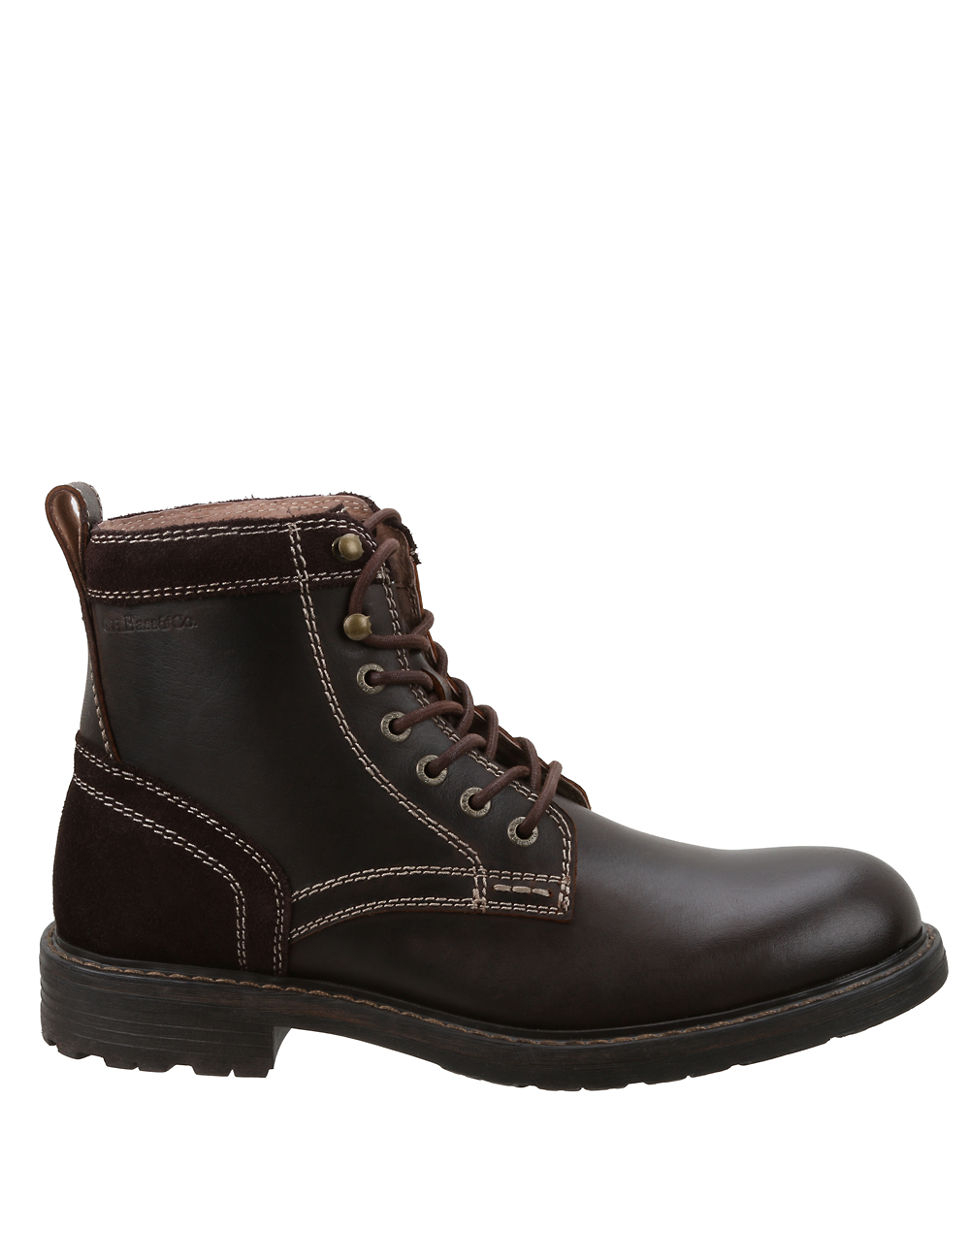 g h bass co reddington leather ankle boots in brown